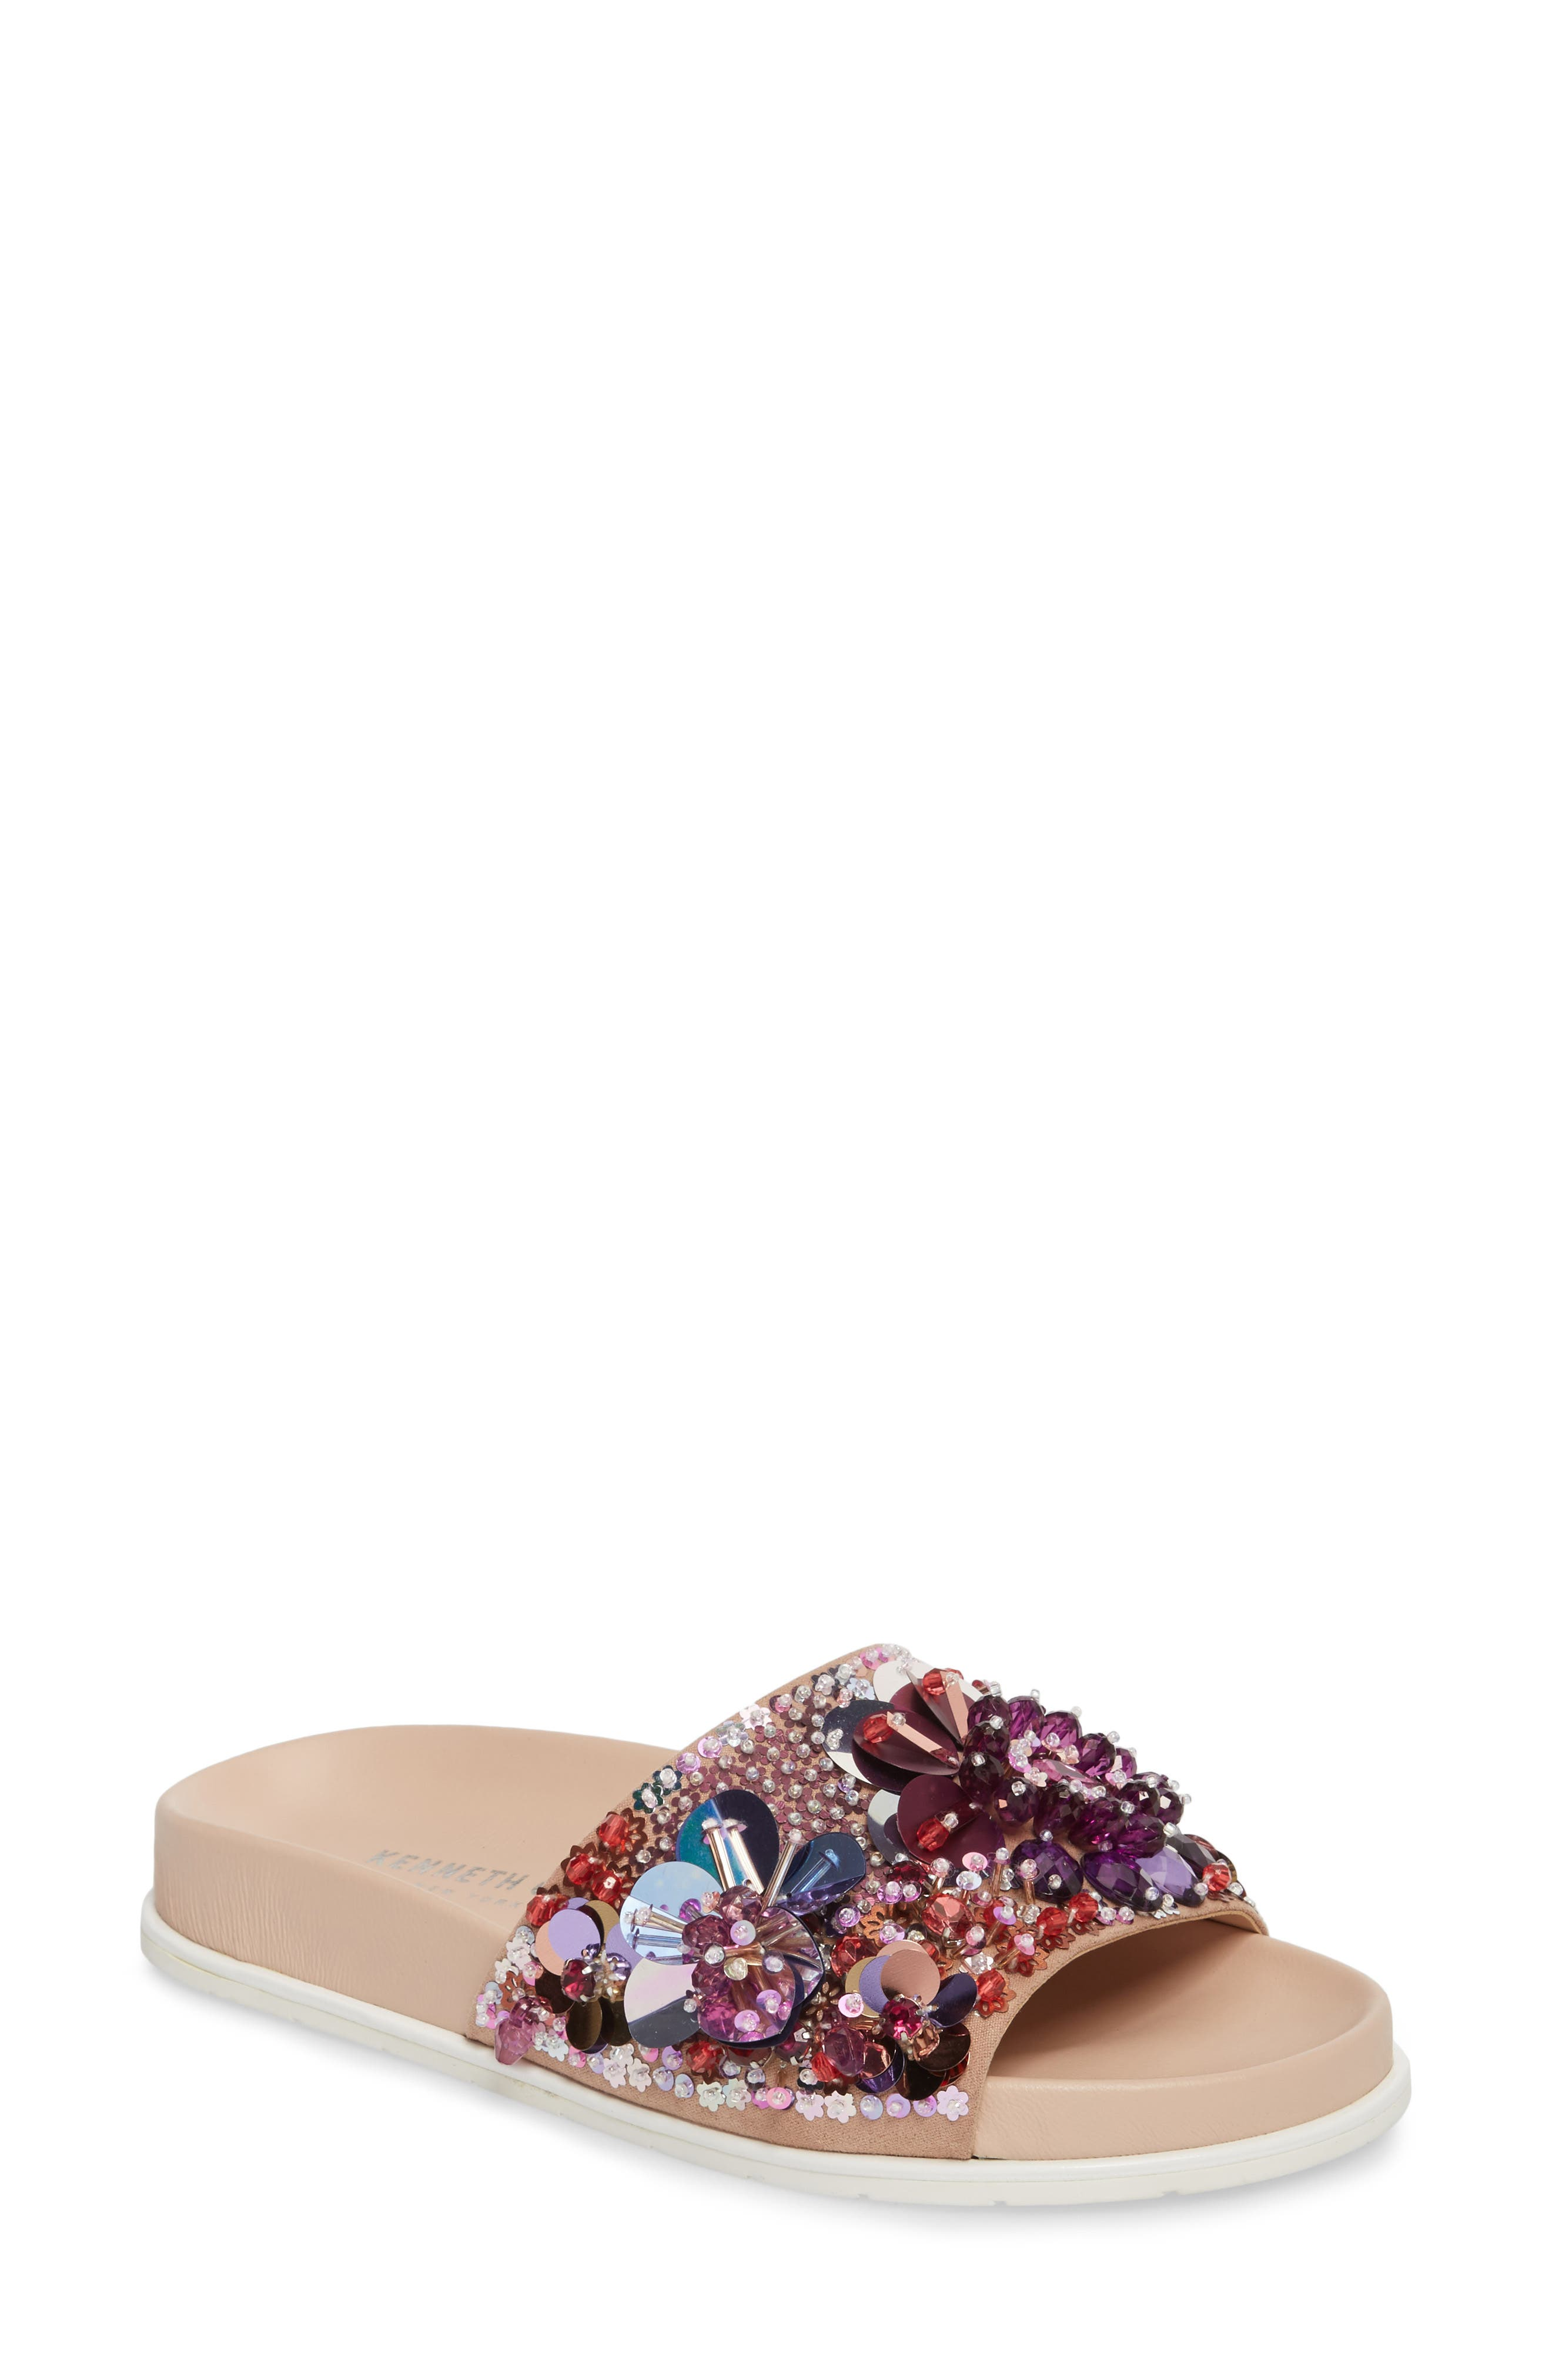 Alternate Image 1 Selected - Kenneth Cole New York Xenia Sequin Embellished Sandal (Women)